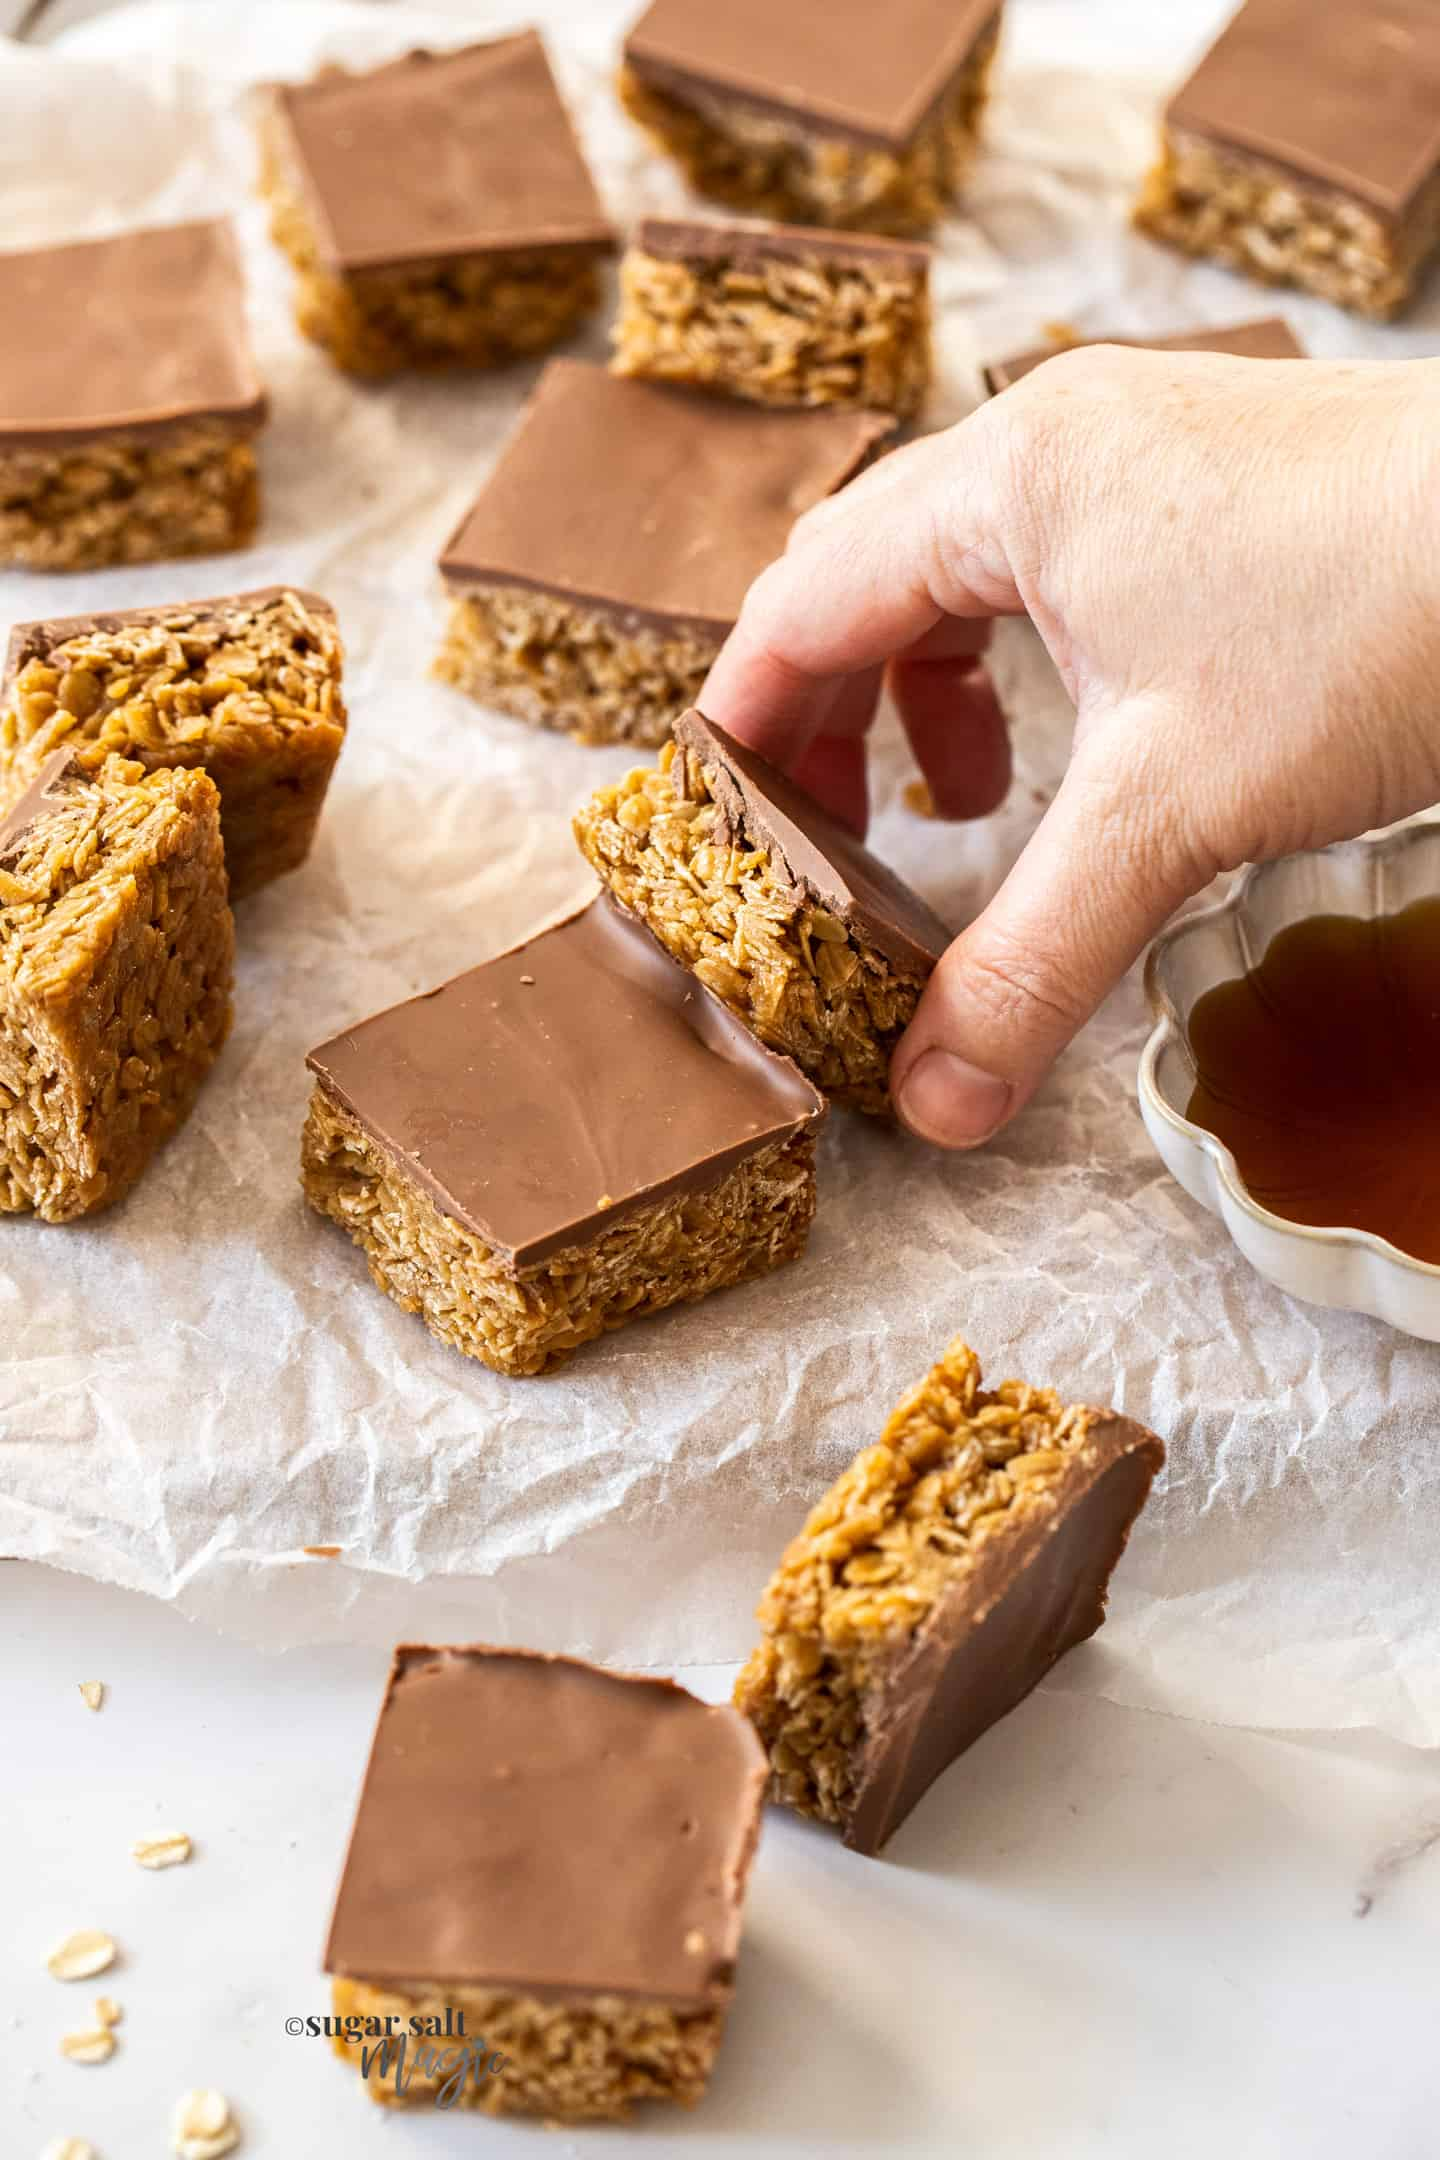 A hand grabbing a chocolate flapjack from a batch.